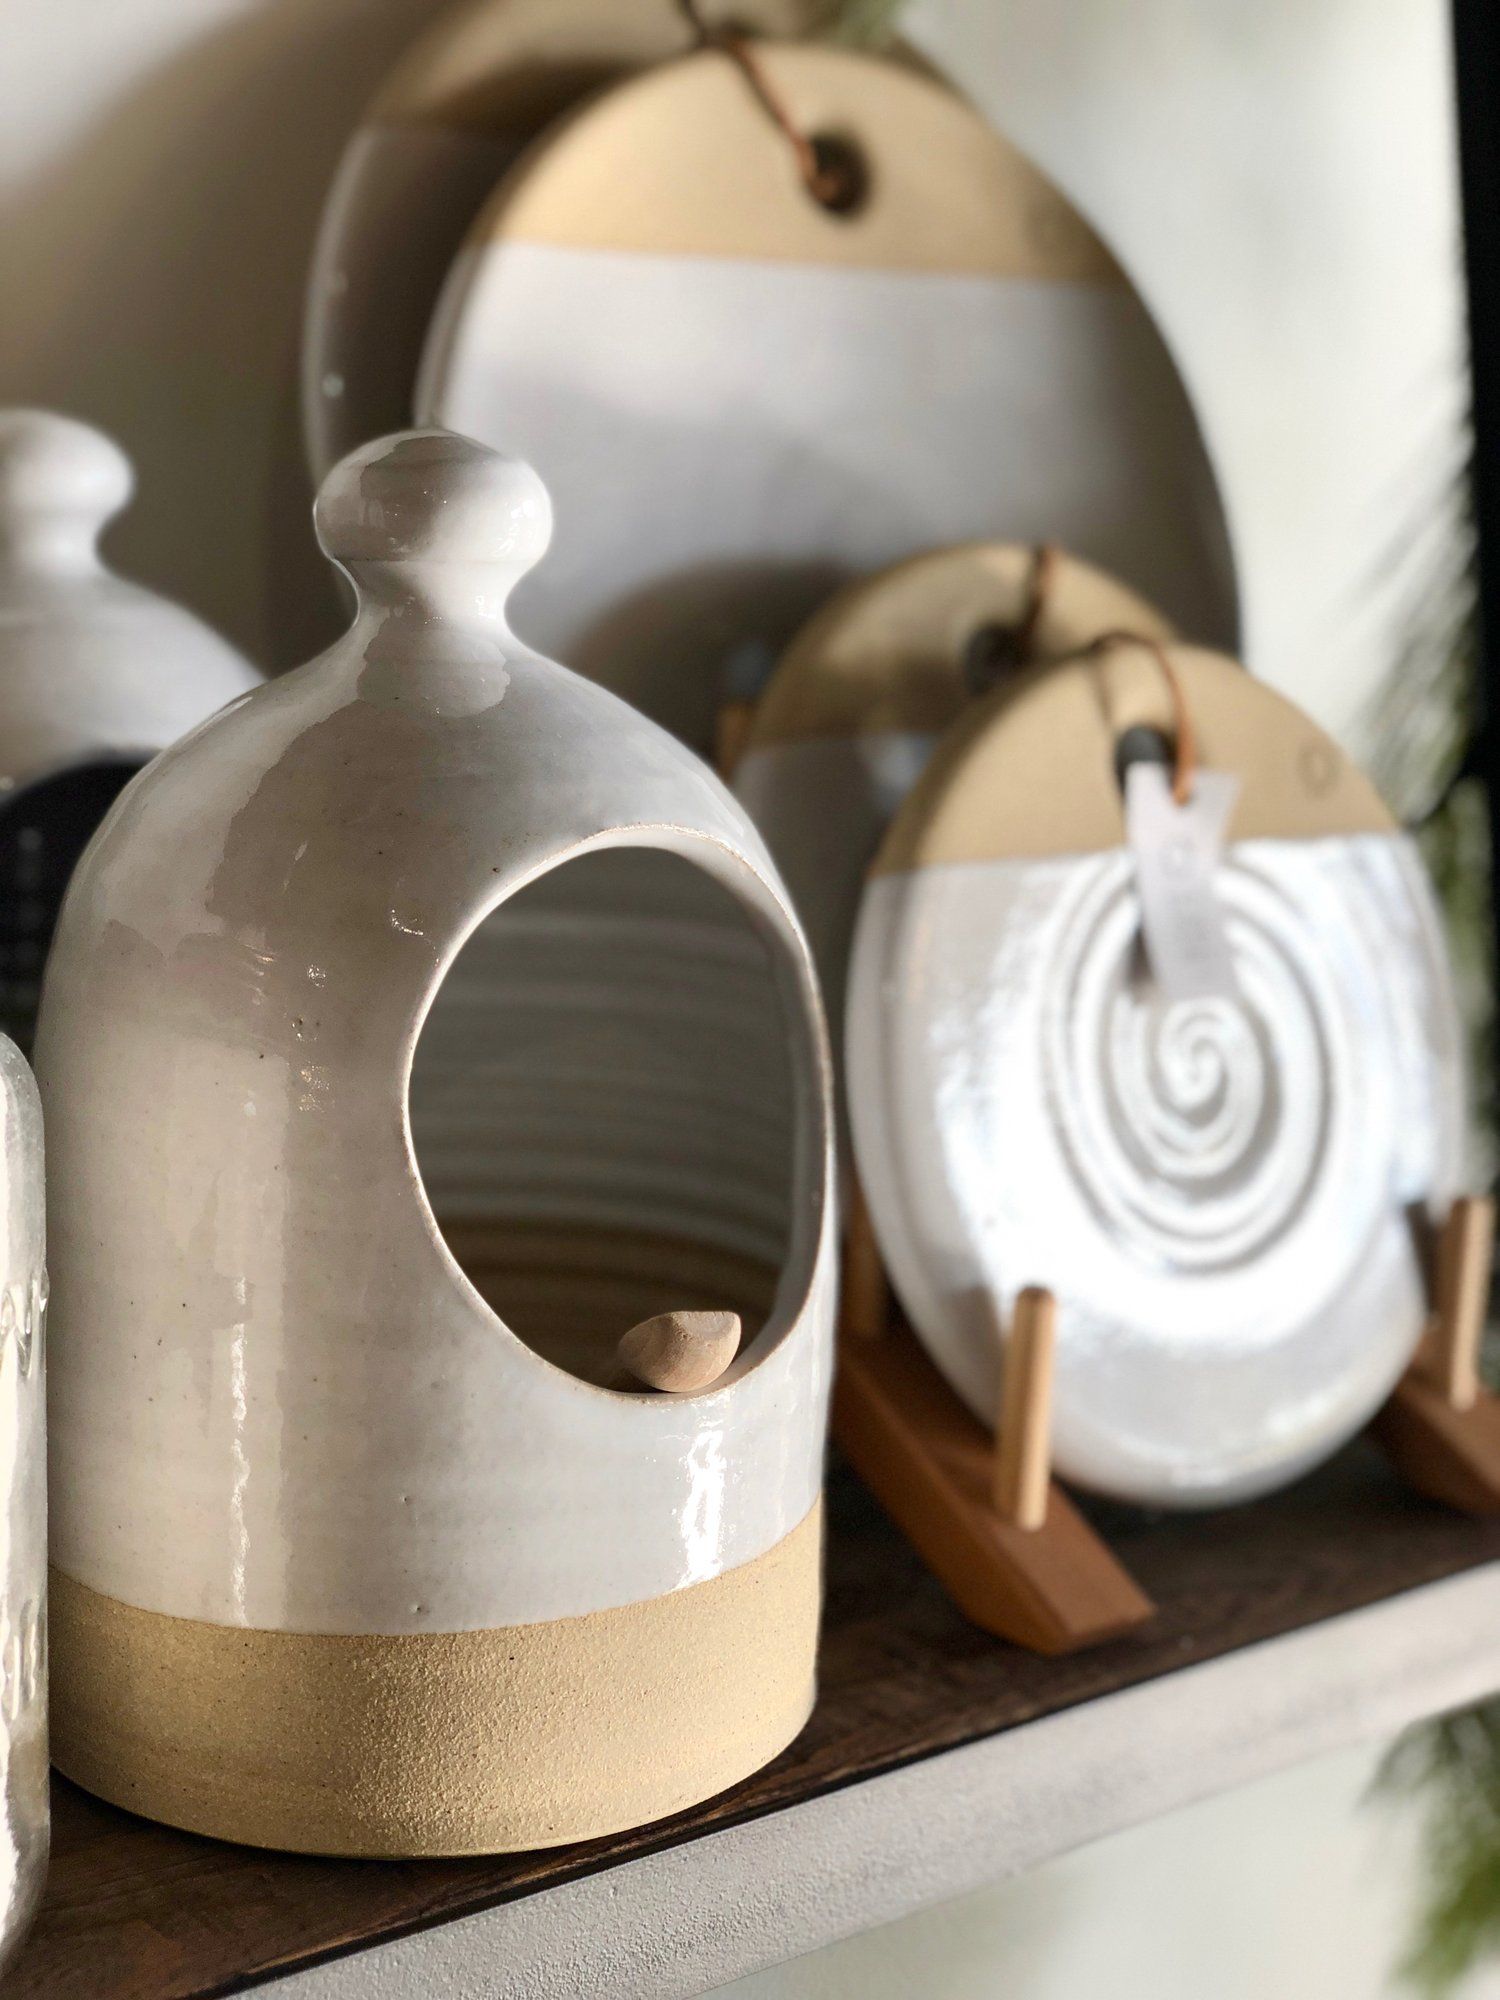 Oversized Salt Cellar and Signature Cheese Stones by Farmhouse Pottery {From $68.00}